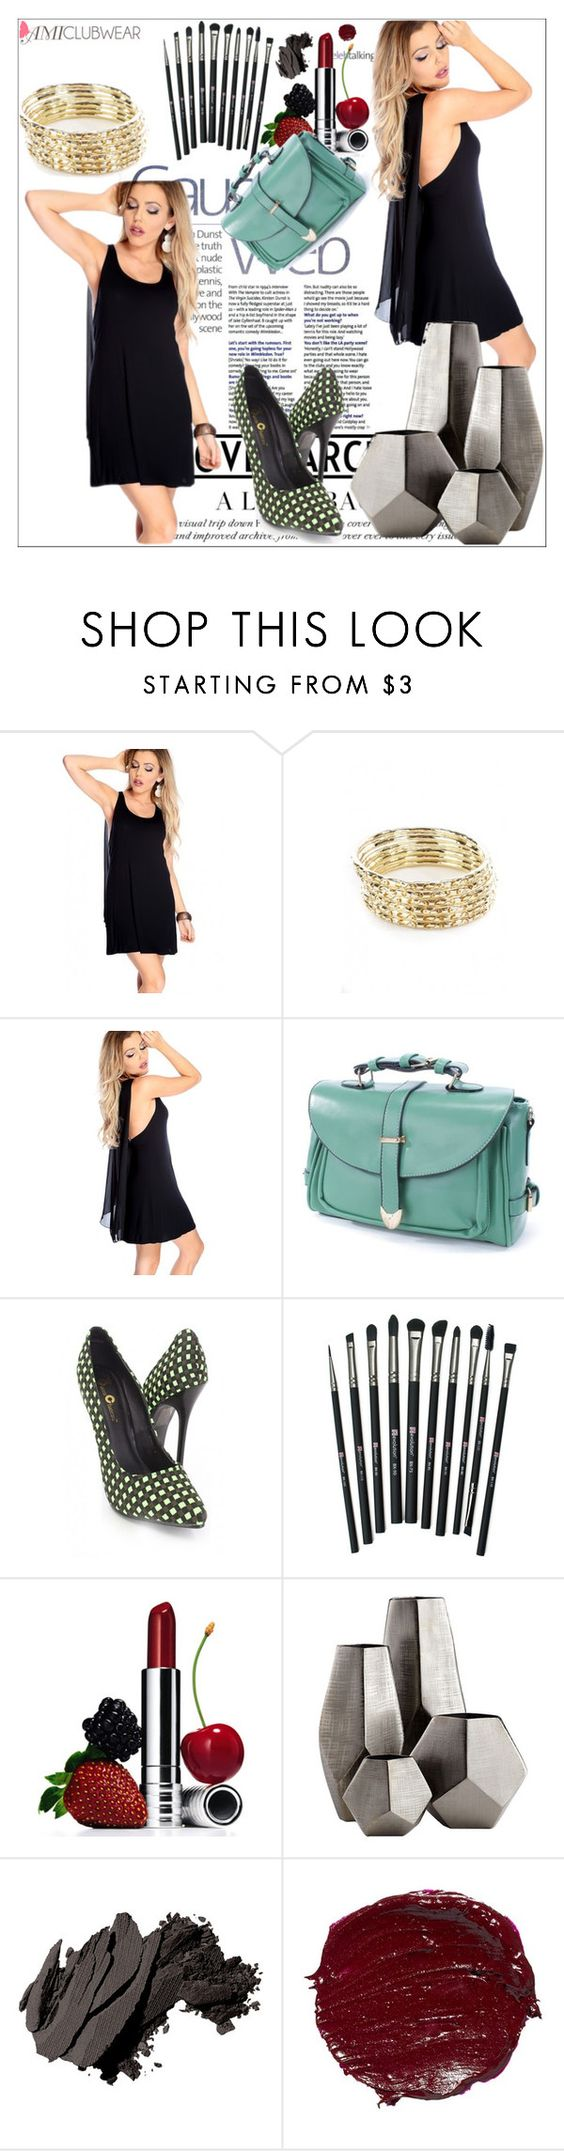 """""""Amiclubwear 30."""" by albinnaflower ❤ liked on Polyvore featuring Revolution, Clinique, Cyan Design, Bobbi Brown Cosmetics, women's clothing, women's fashion, women, female, woman and misses"""